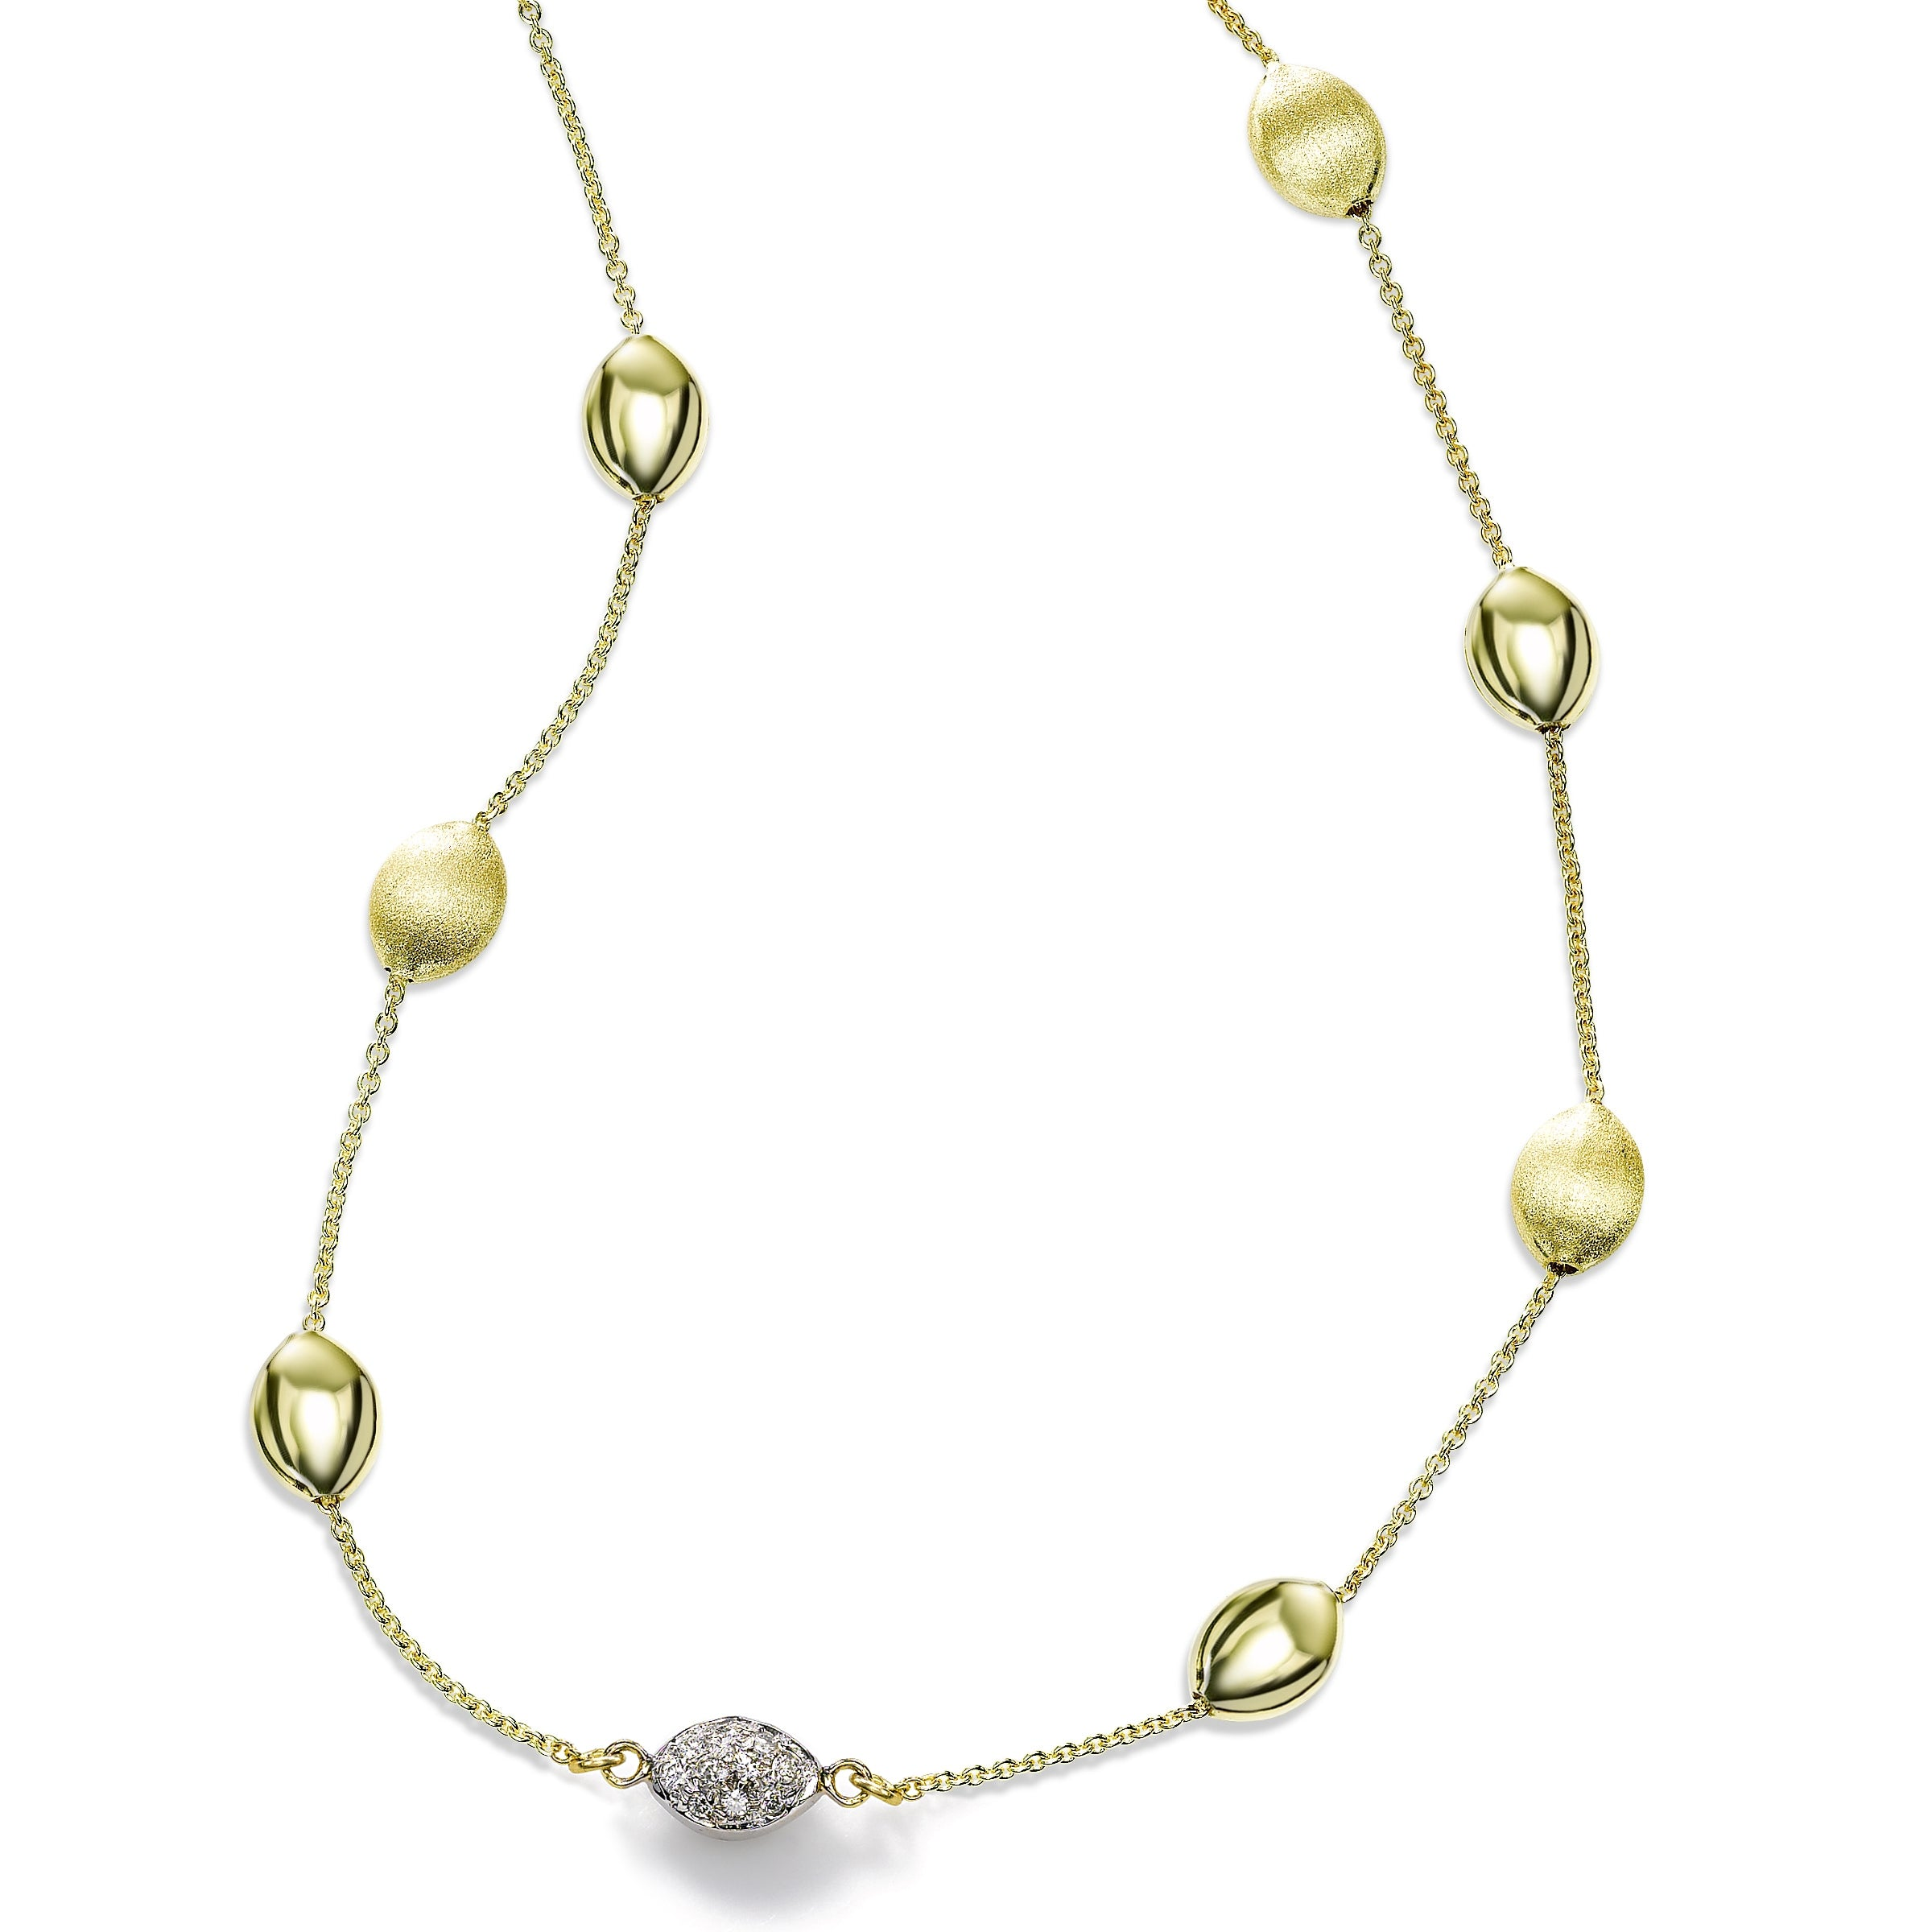 Gold and Diamond Pebble Necklace, 14 Karat Gold